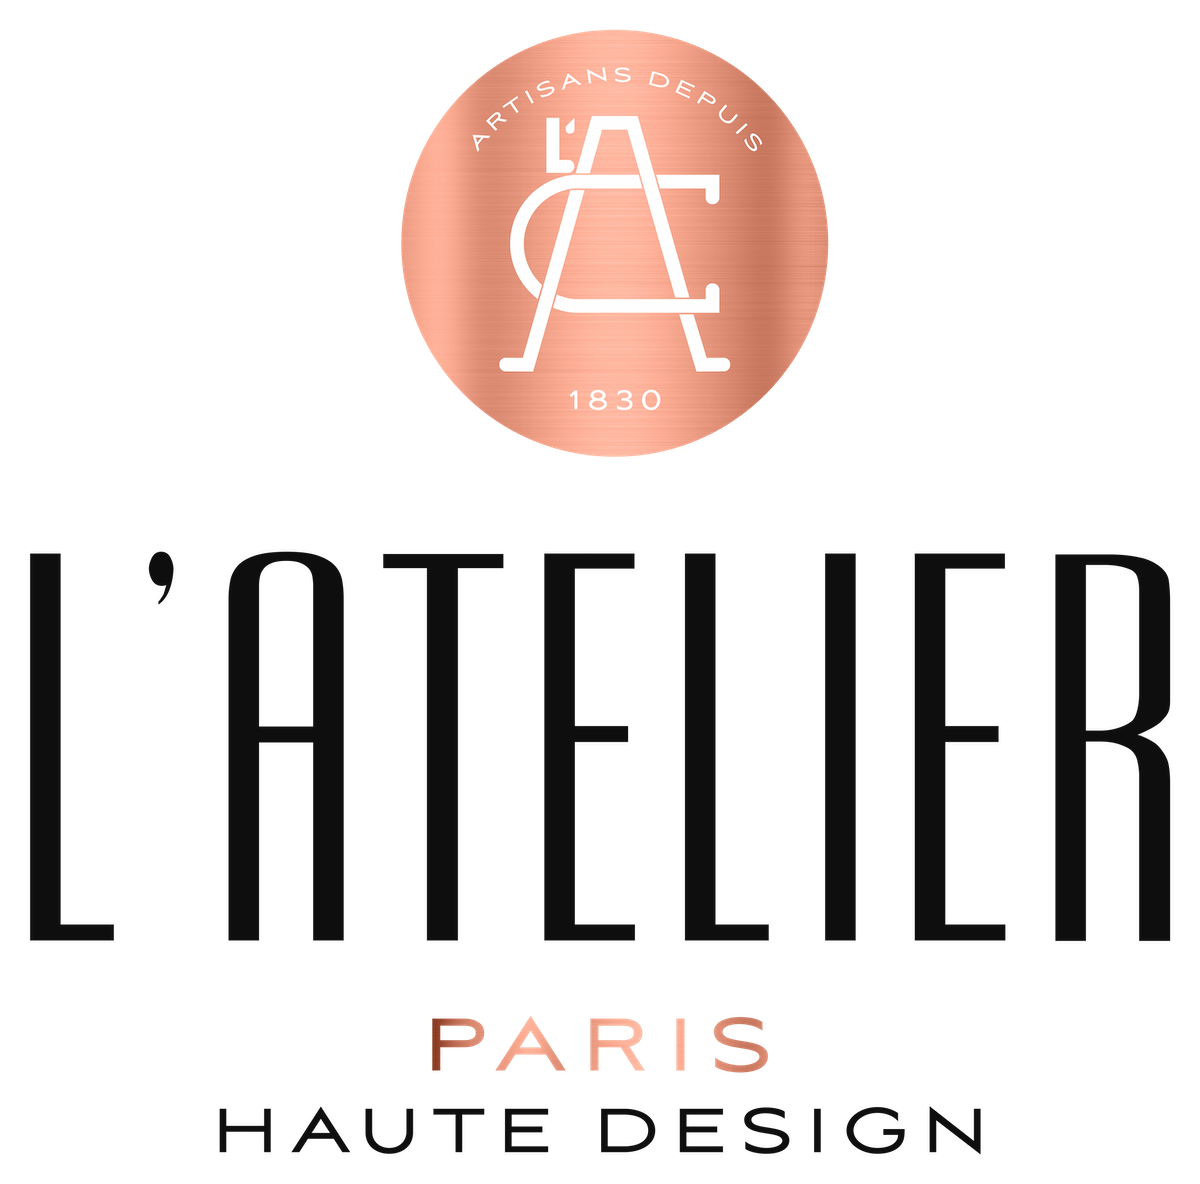 Our History | Custom French Kitchens Since 1830 | L'Atelier